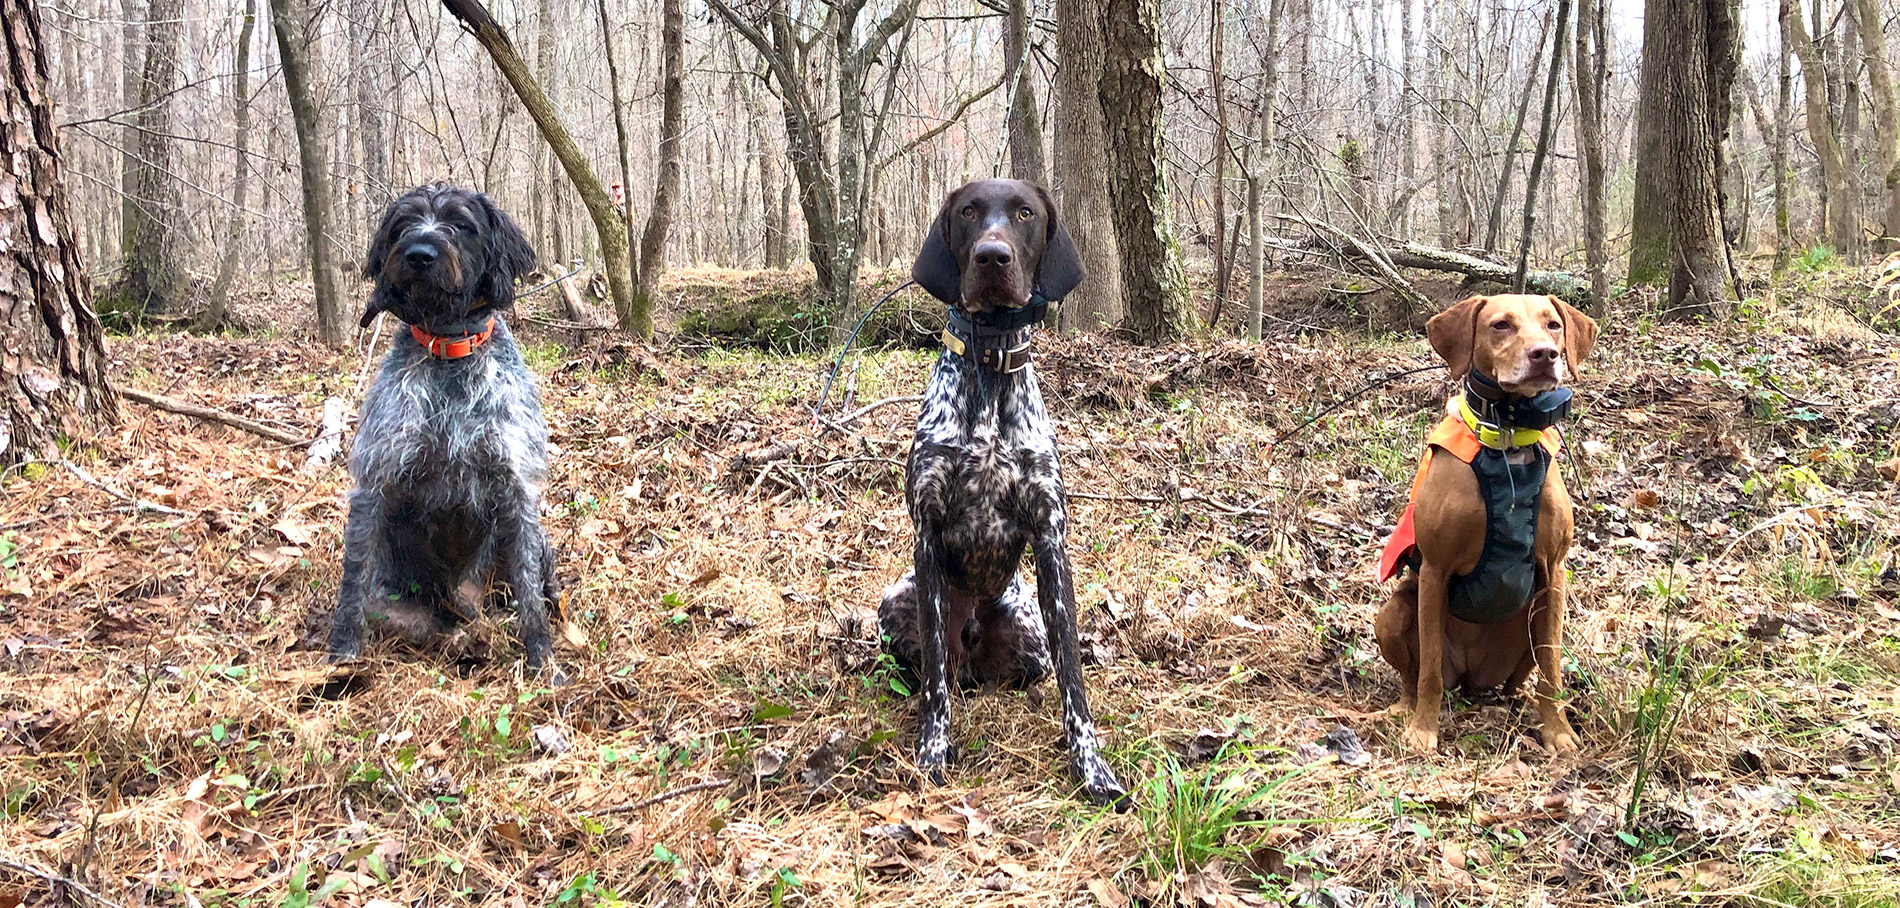 Gus the GWP, Aries the DK, and Zara the vizsla